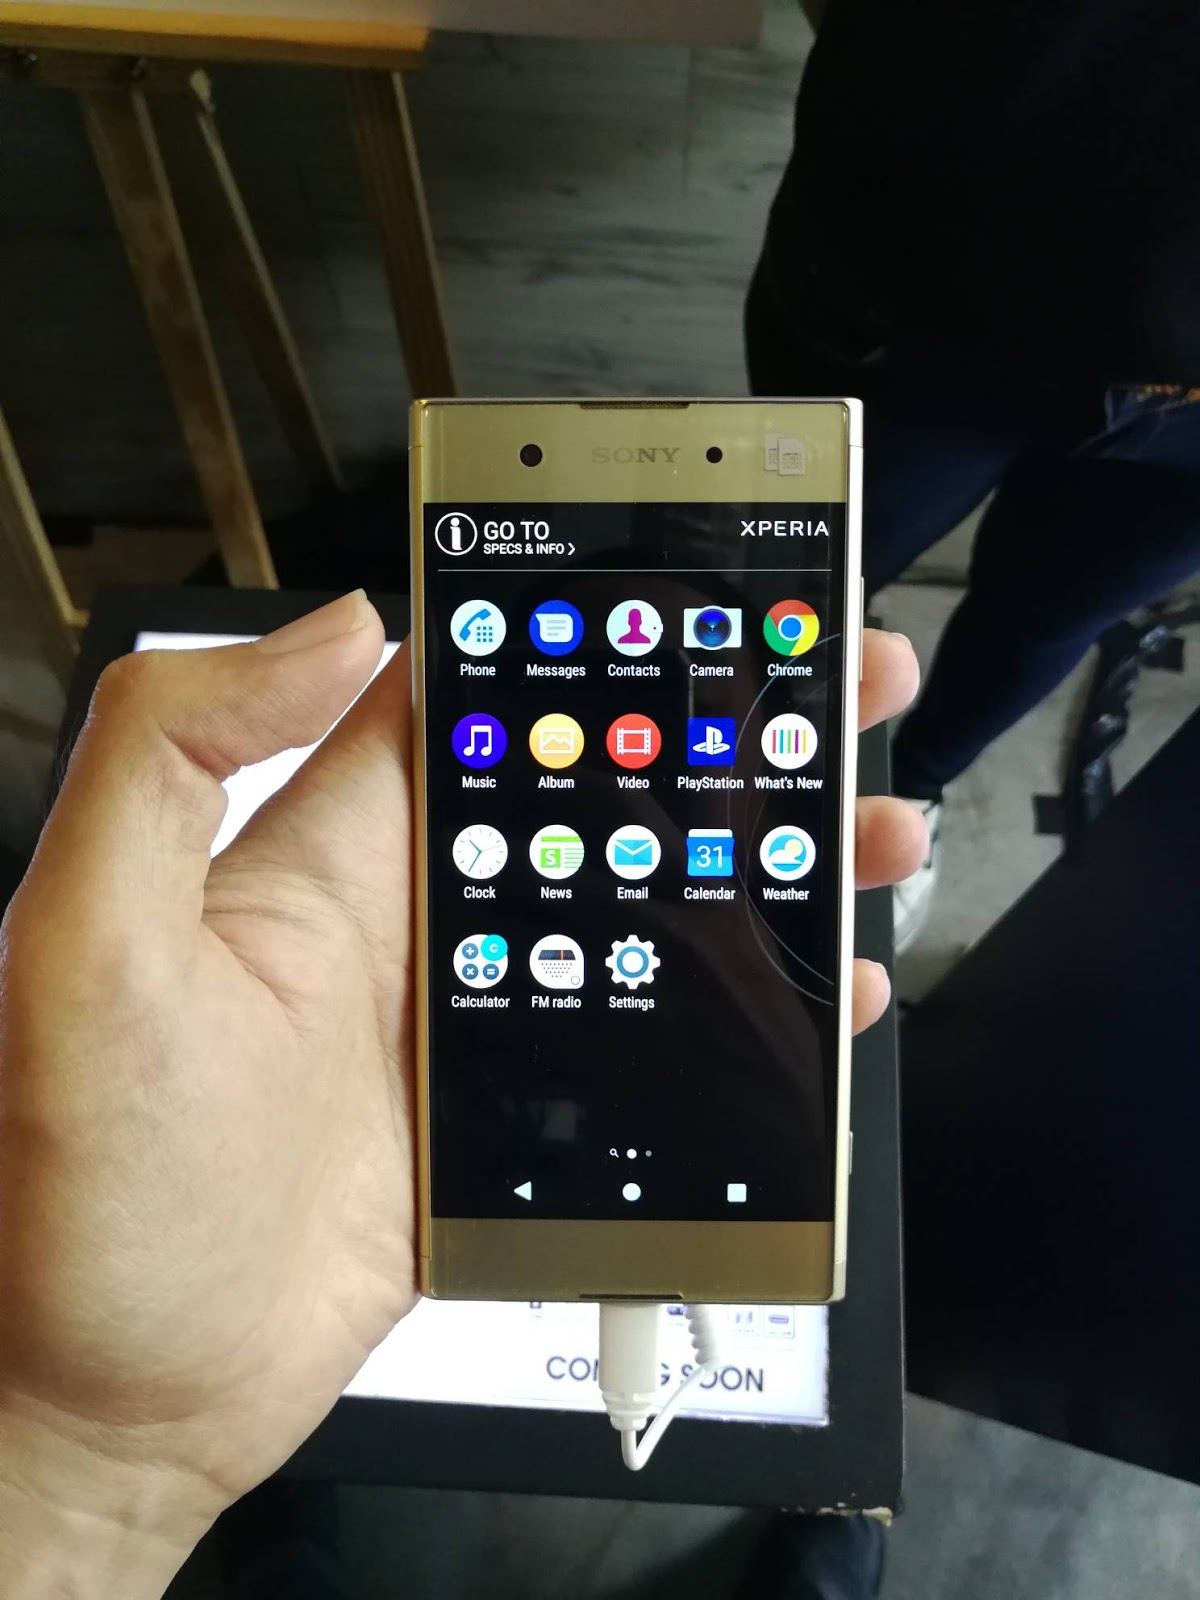 Sony Xperia XA1 Plus First Look, Camera Samples, Probable Release